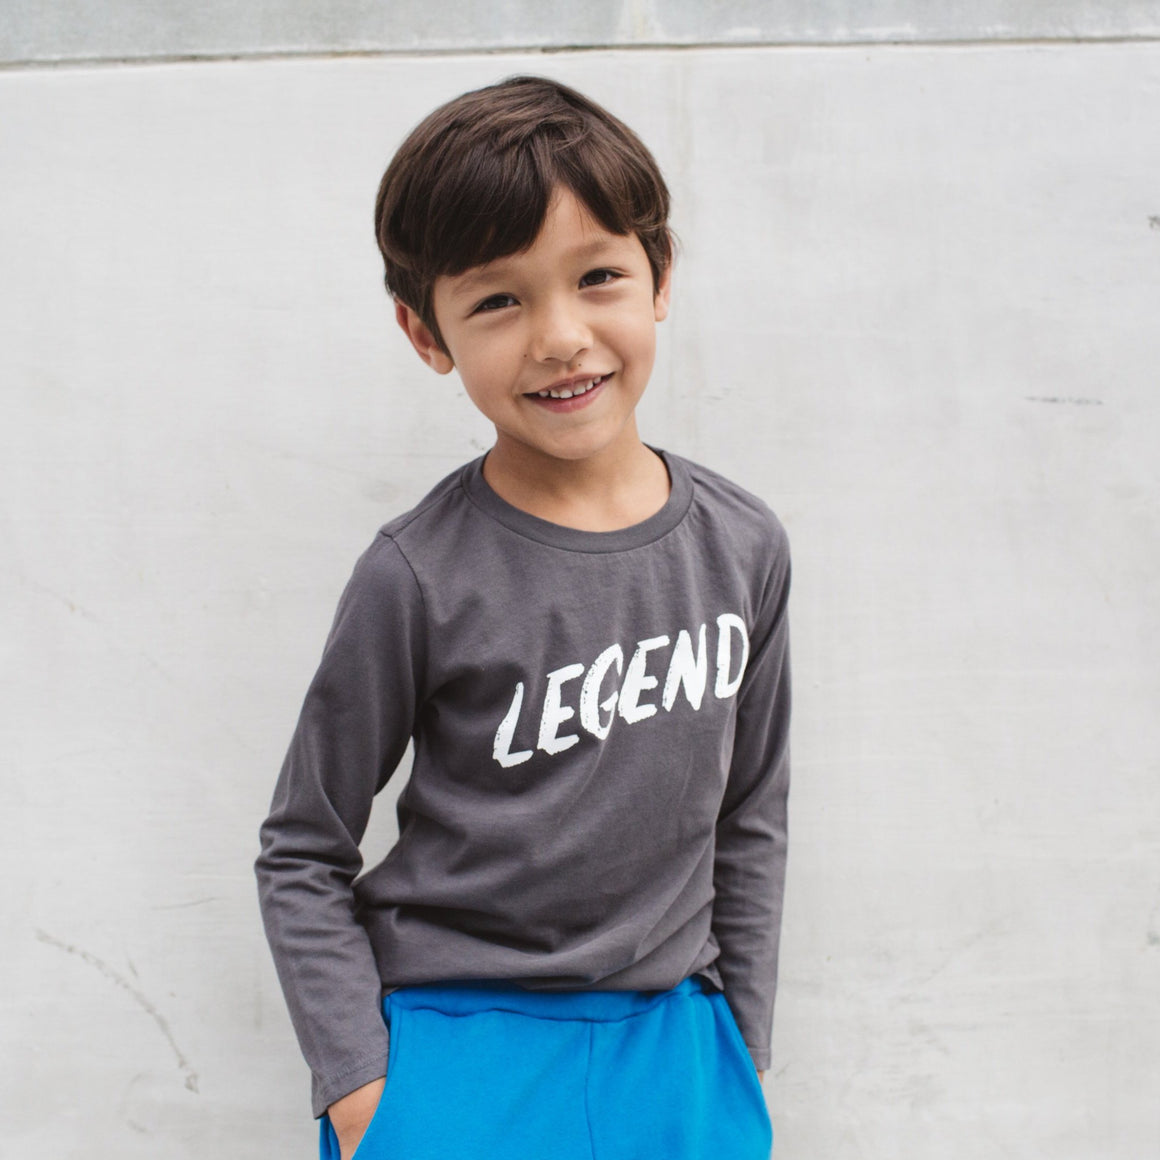 Legend Graphic T-shirt, Long Sleeve, Slate Grey